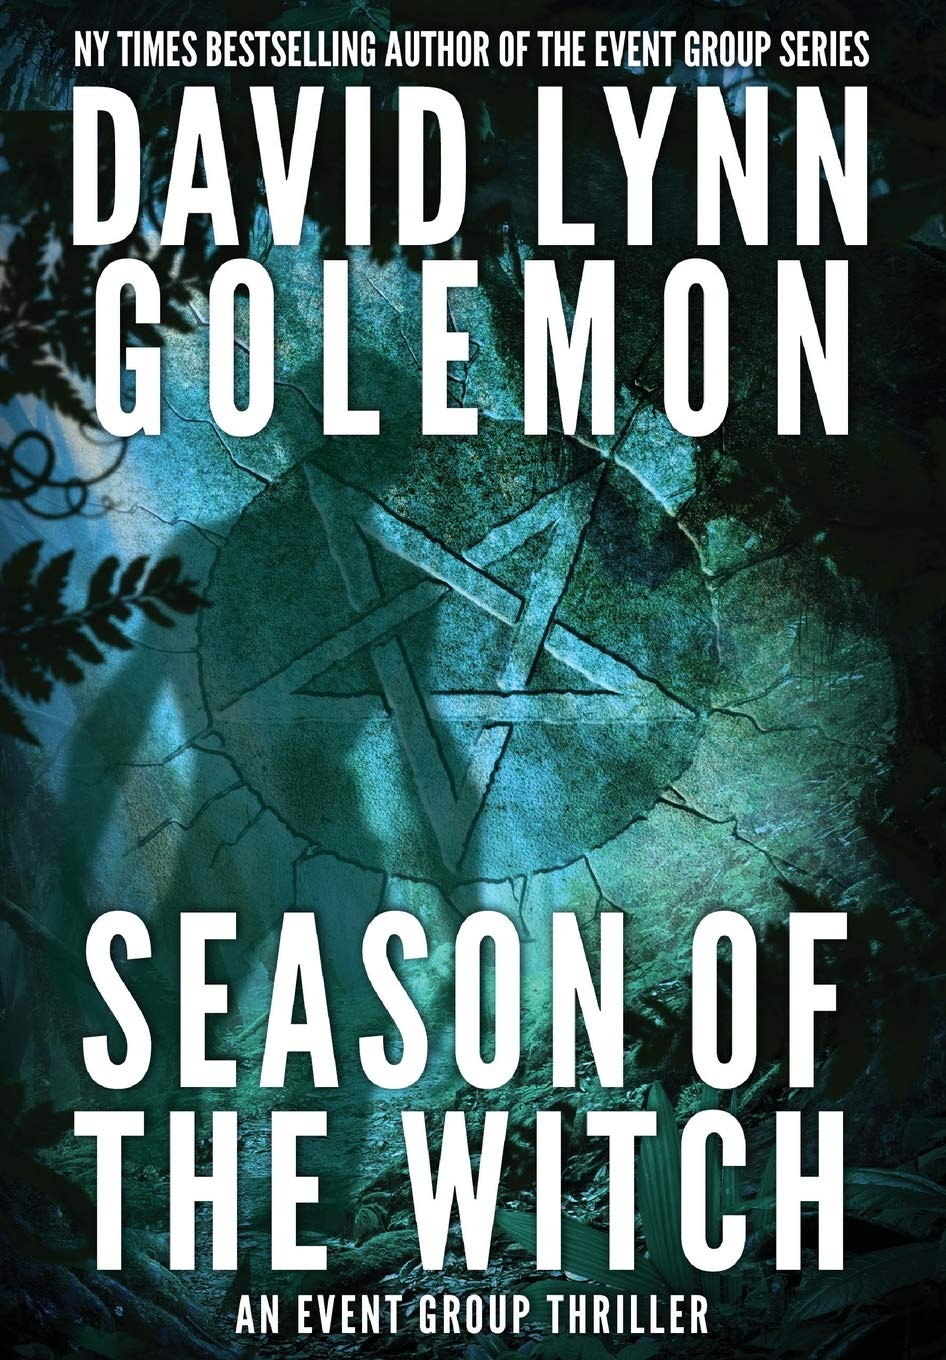 A Season With The Witch PDF Free Download